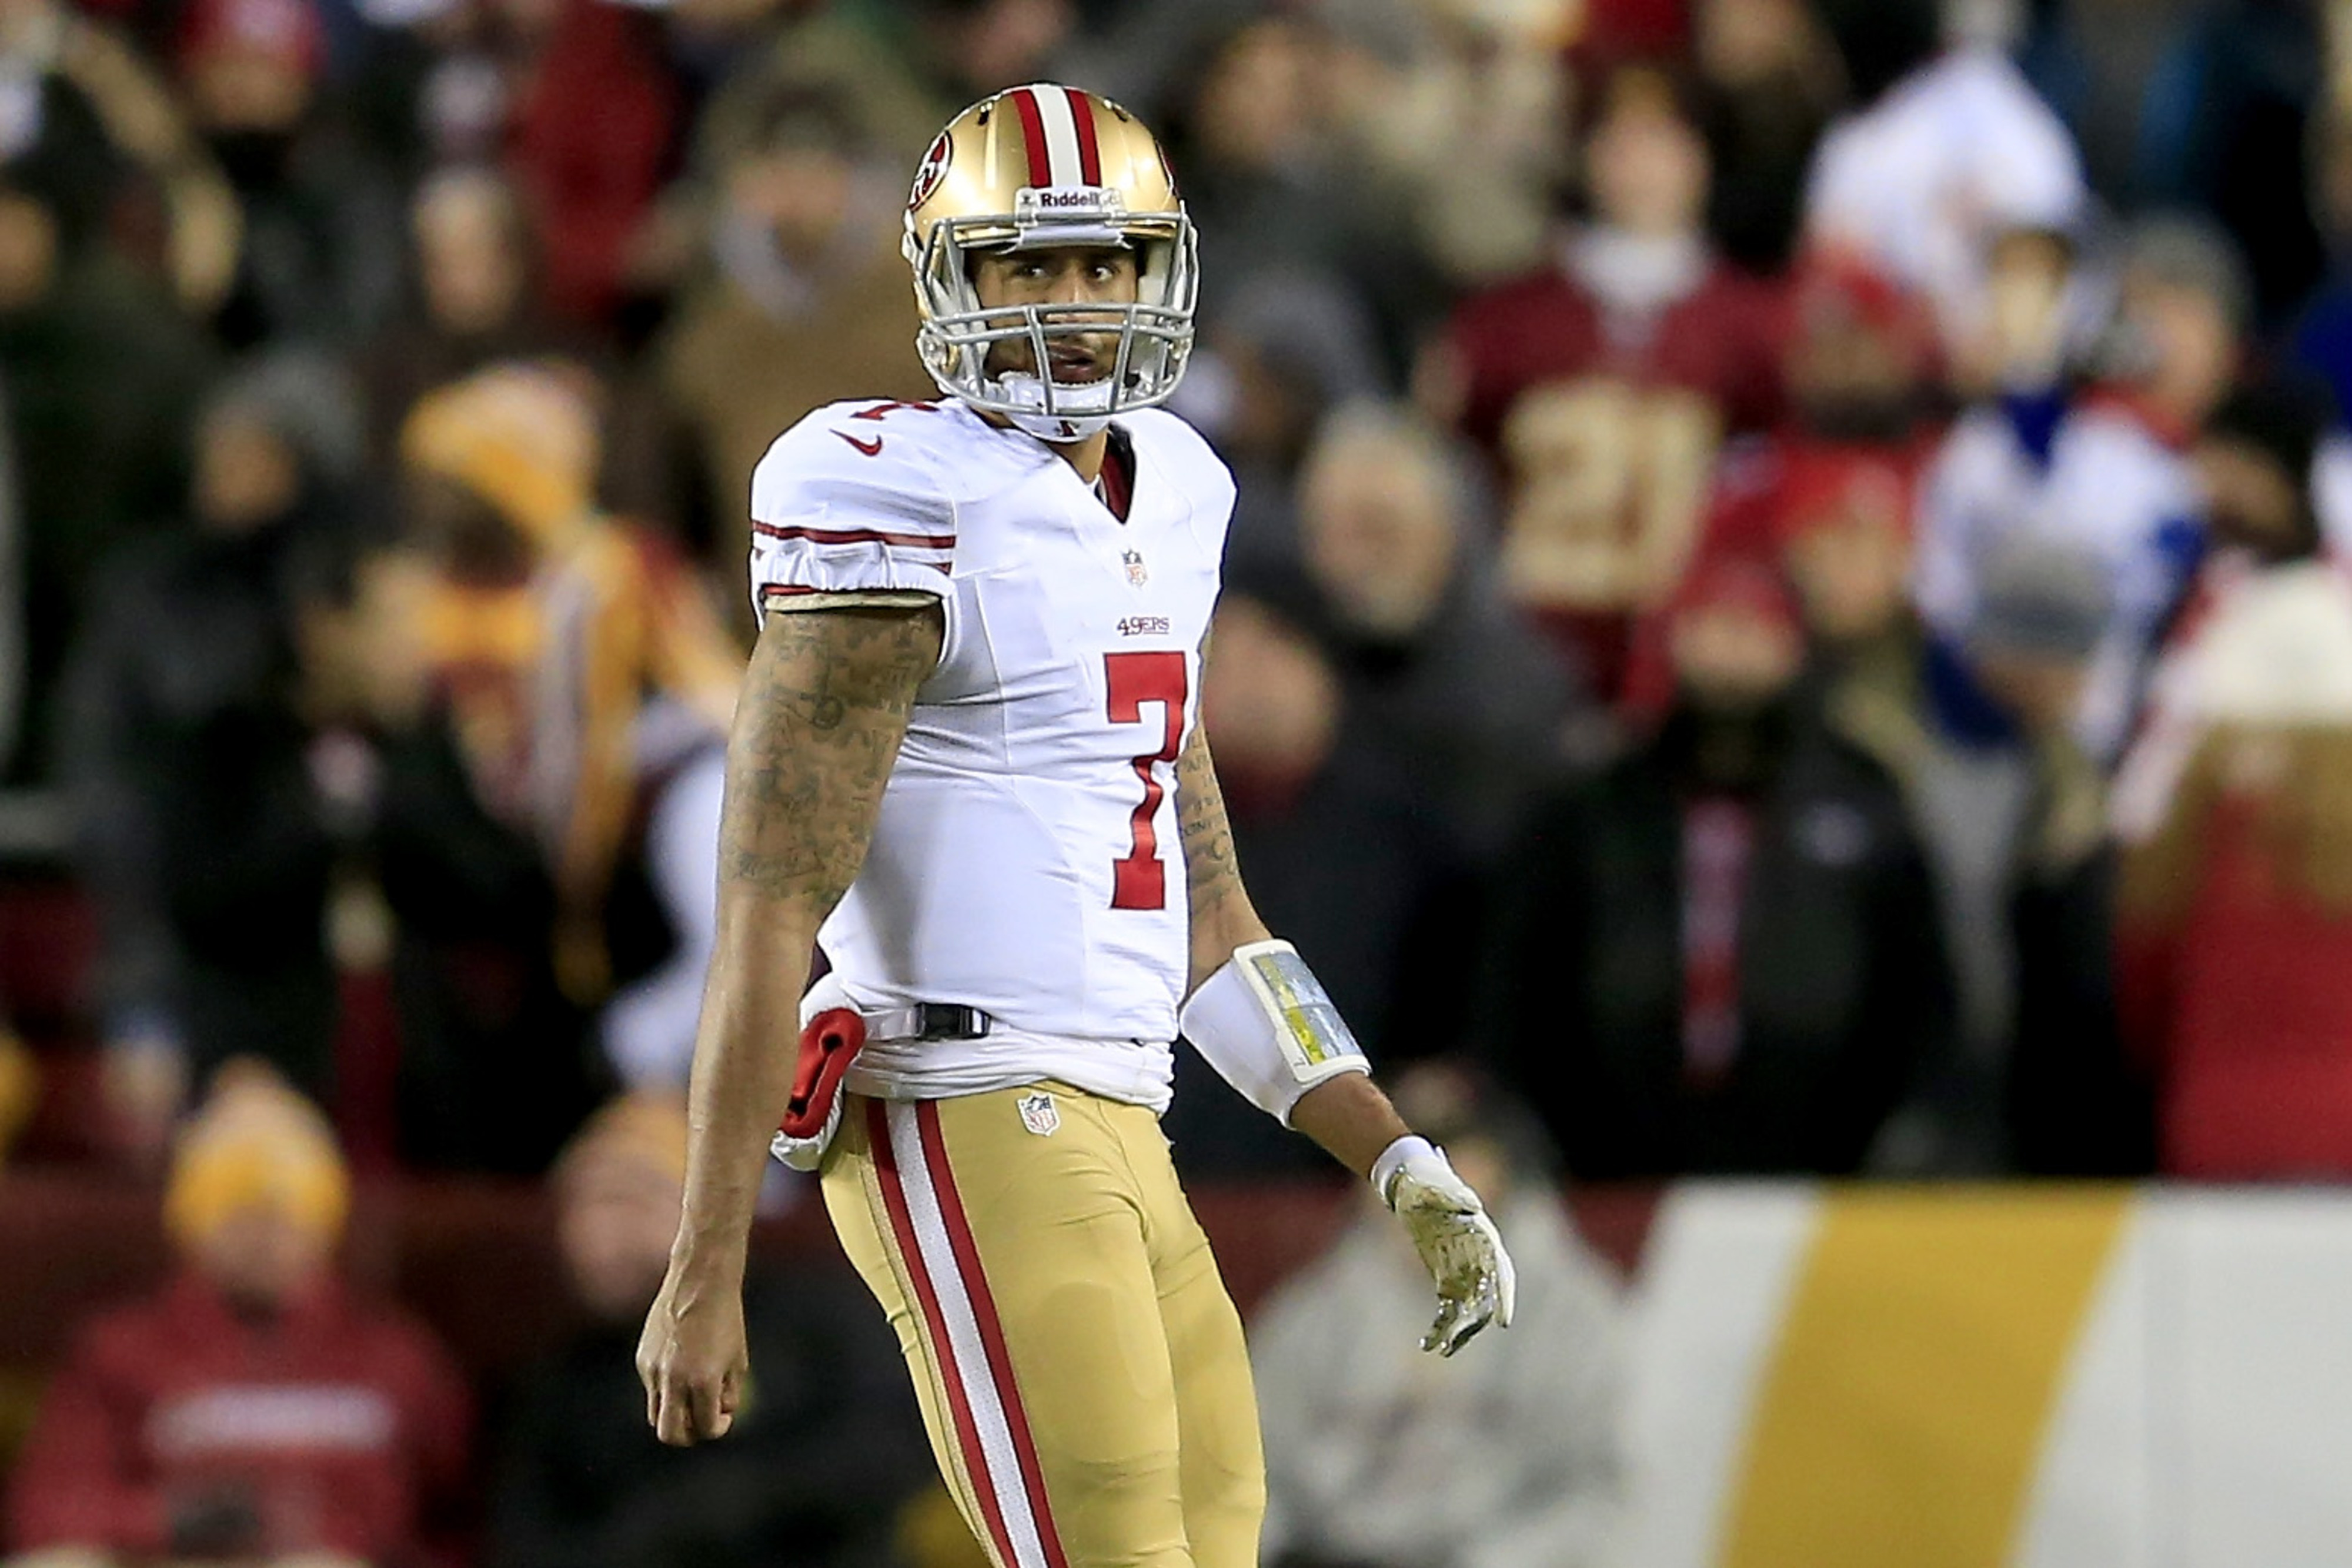 NFL playoff odds: 49ers, Colts favored in Wild Card round